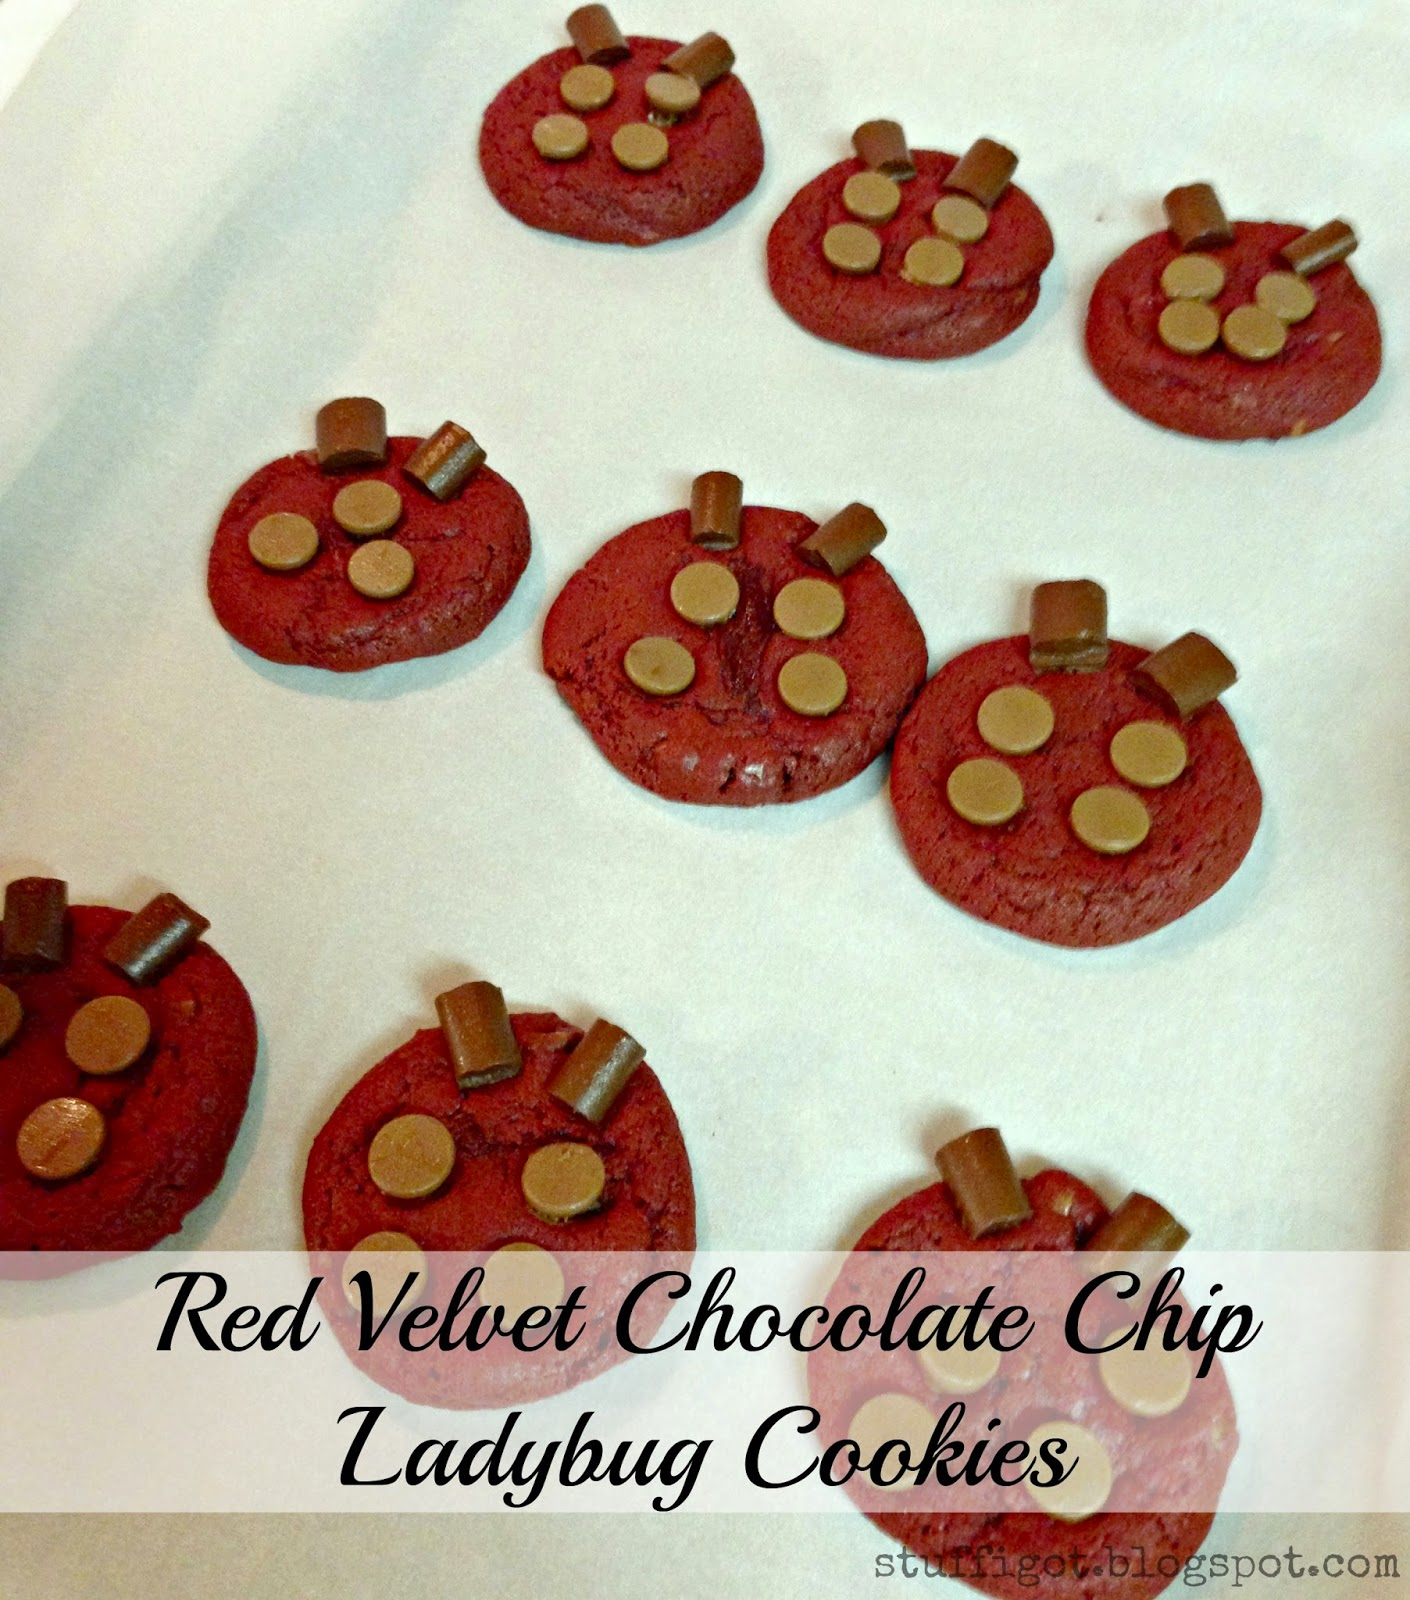 Crafty And Wanderfull Life: Red Velvet Chocolate Chip Ladybug Cookies